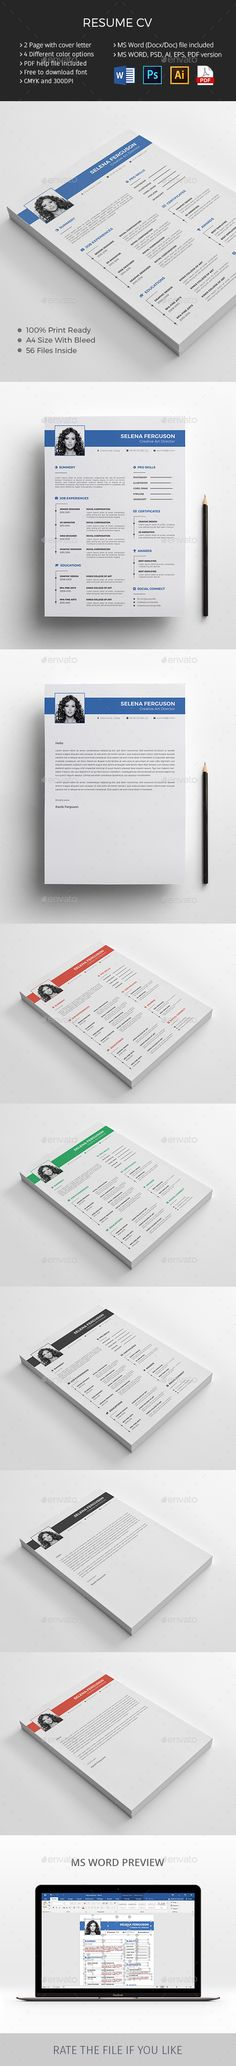 Landscape Resume Landscaping Template and